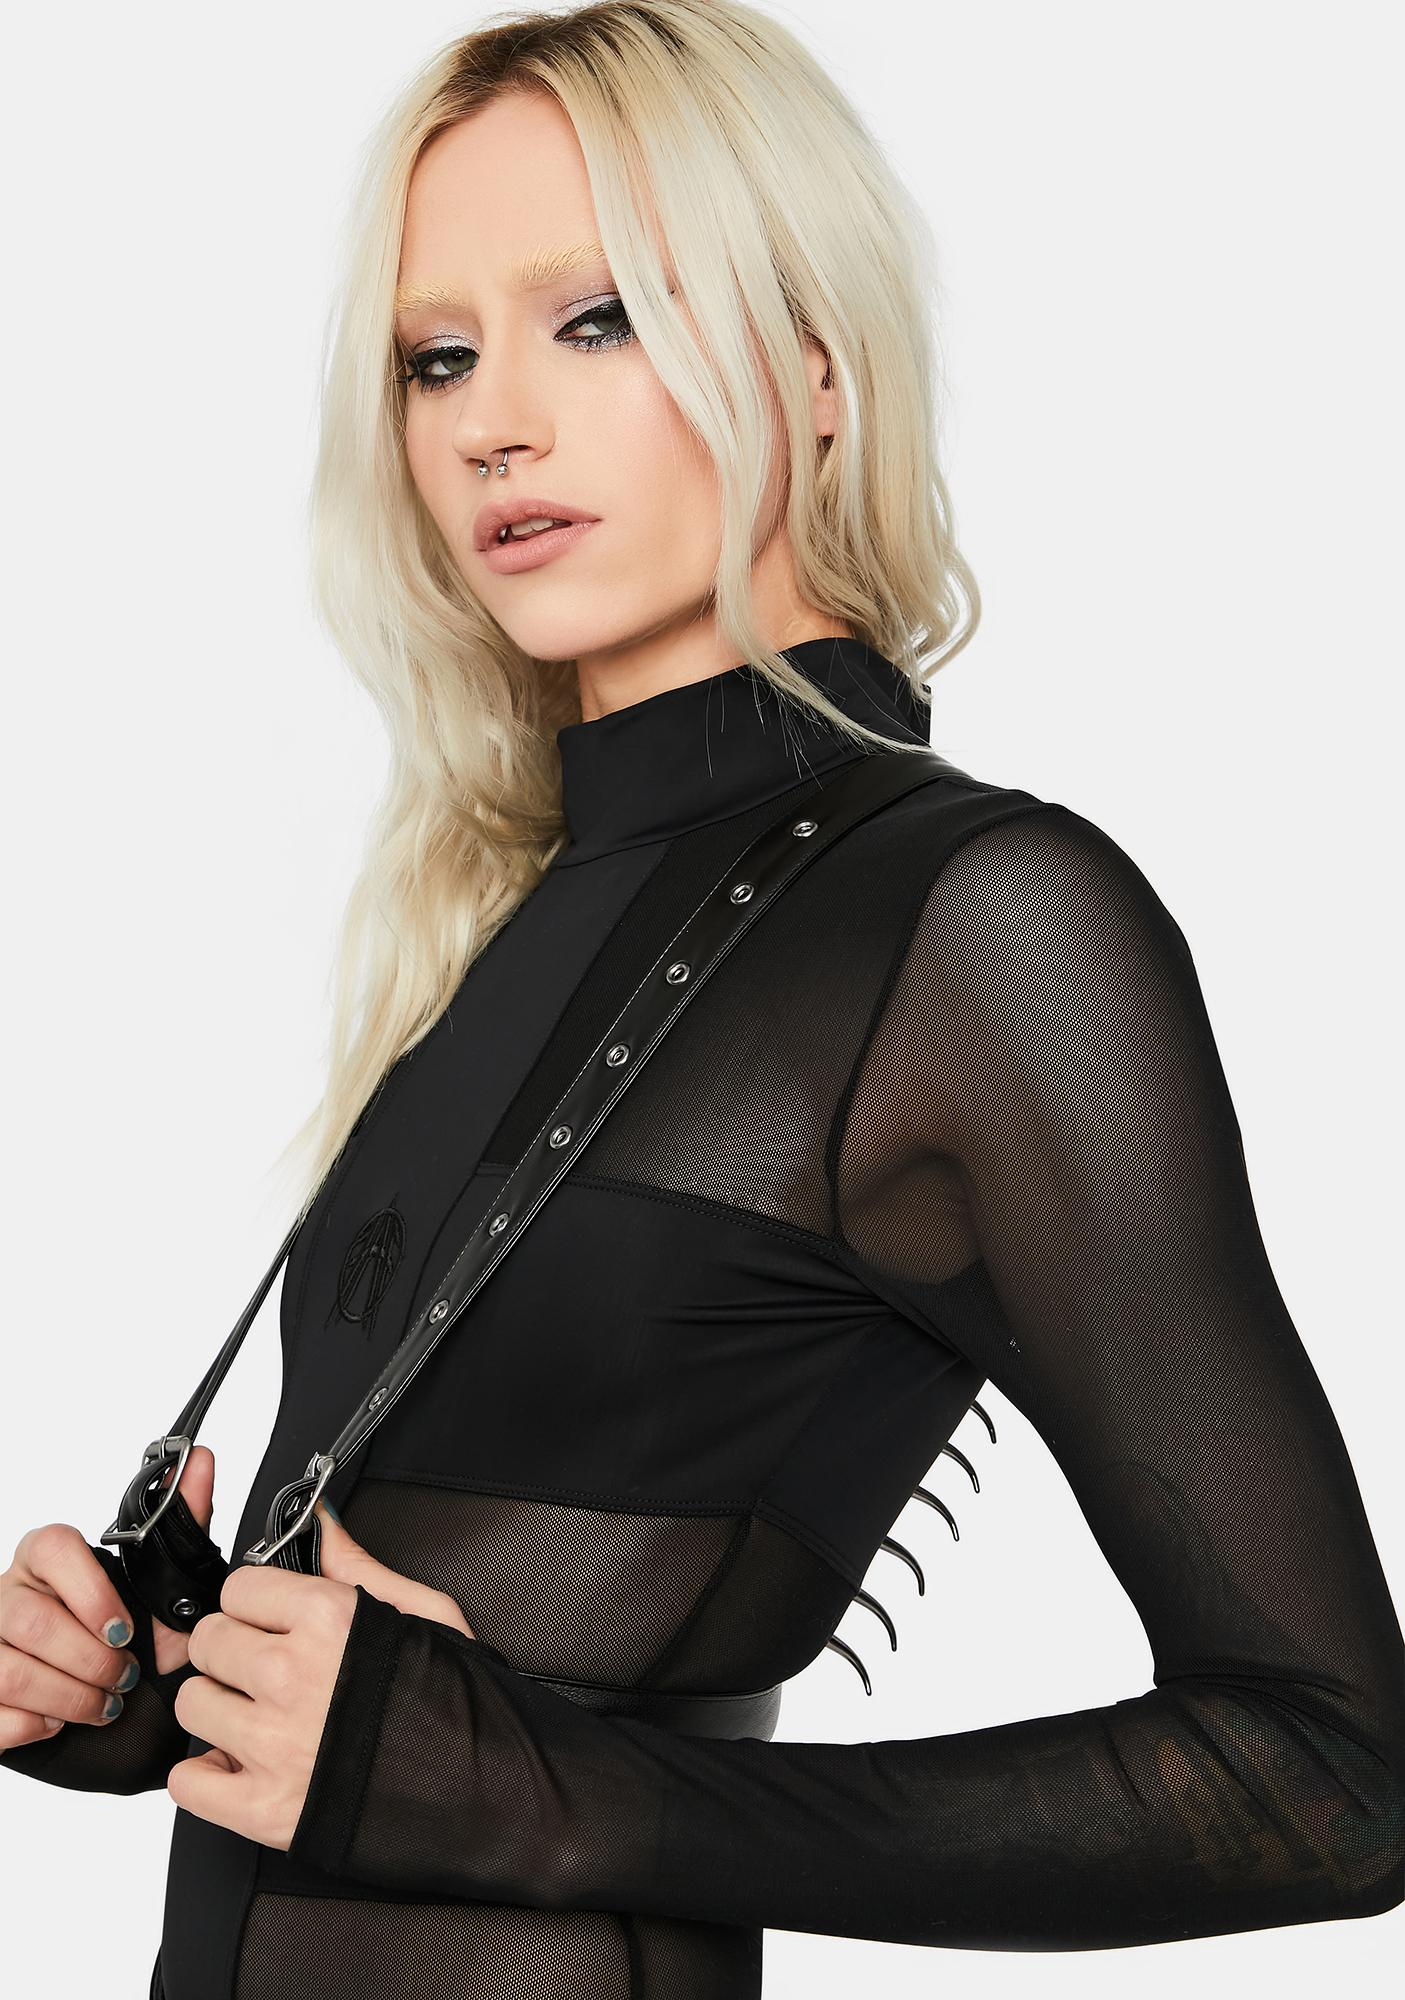 FAN ALL FLAMES Impale Spiked Harness